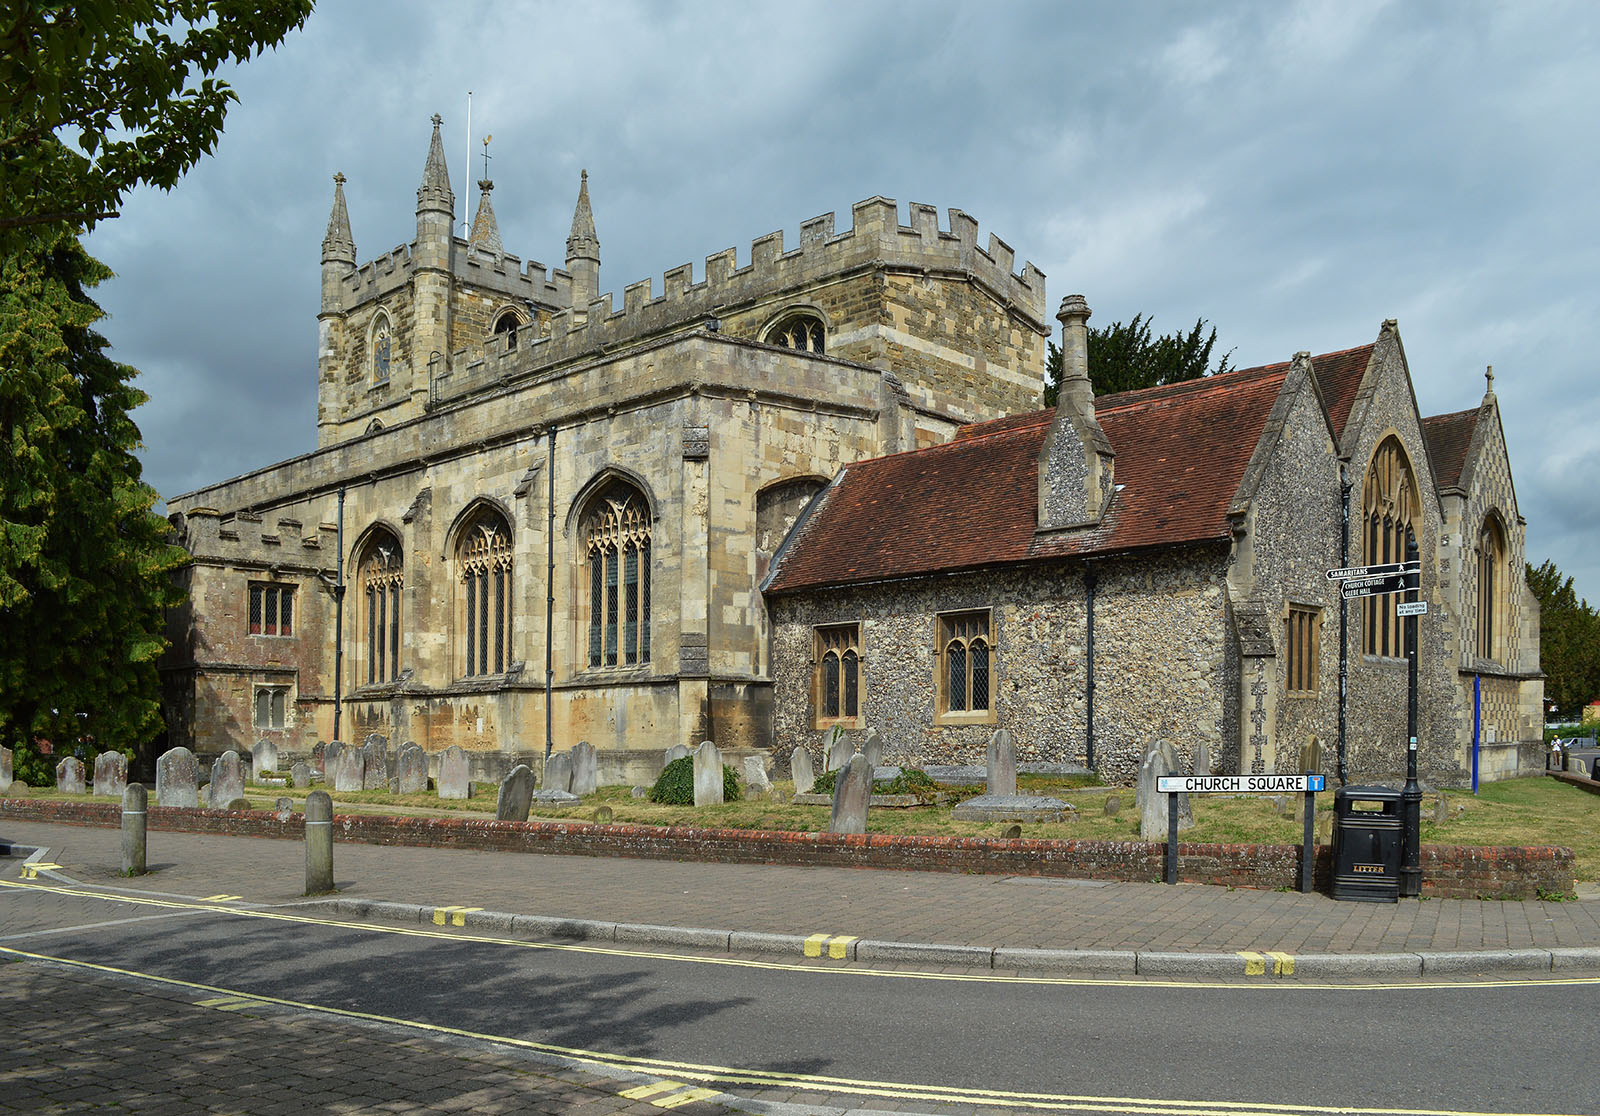 St Marys Parish Church in Andover.